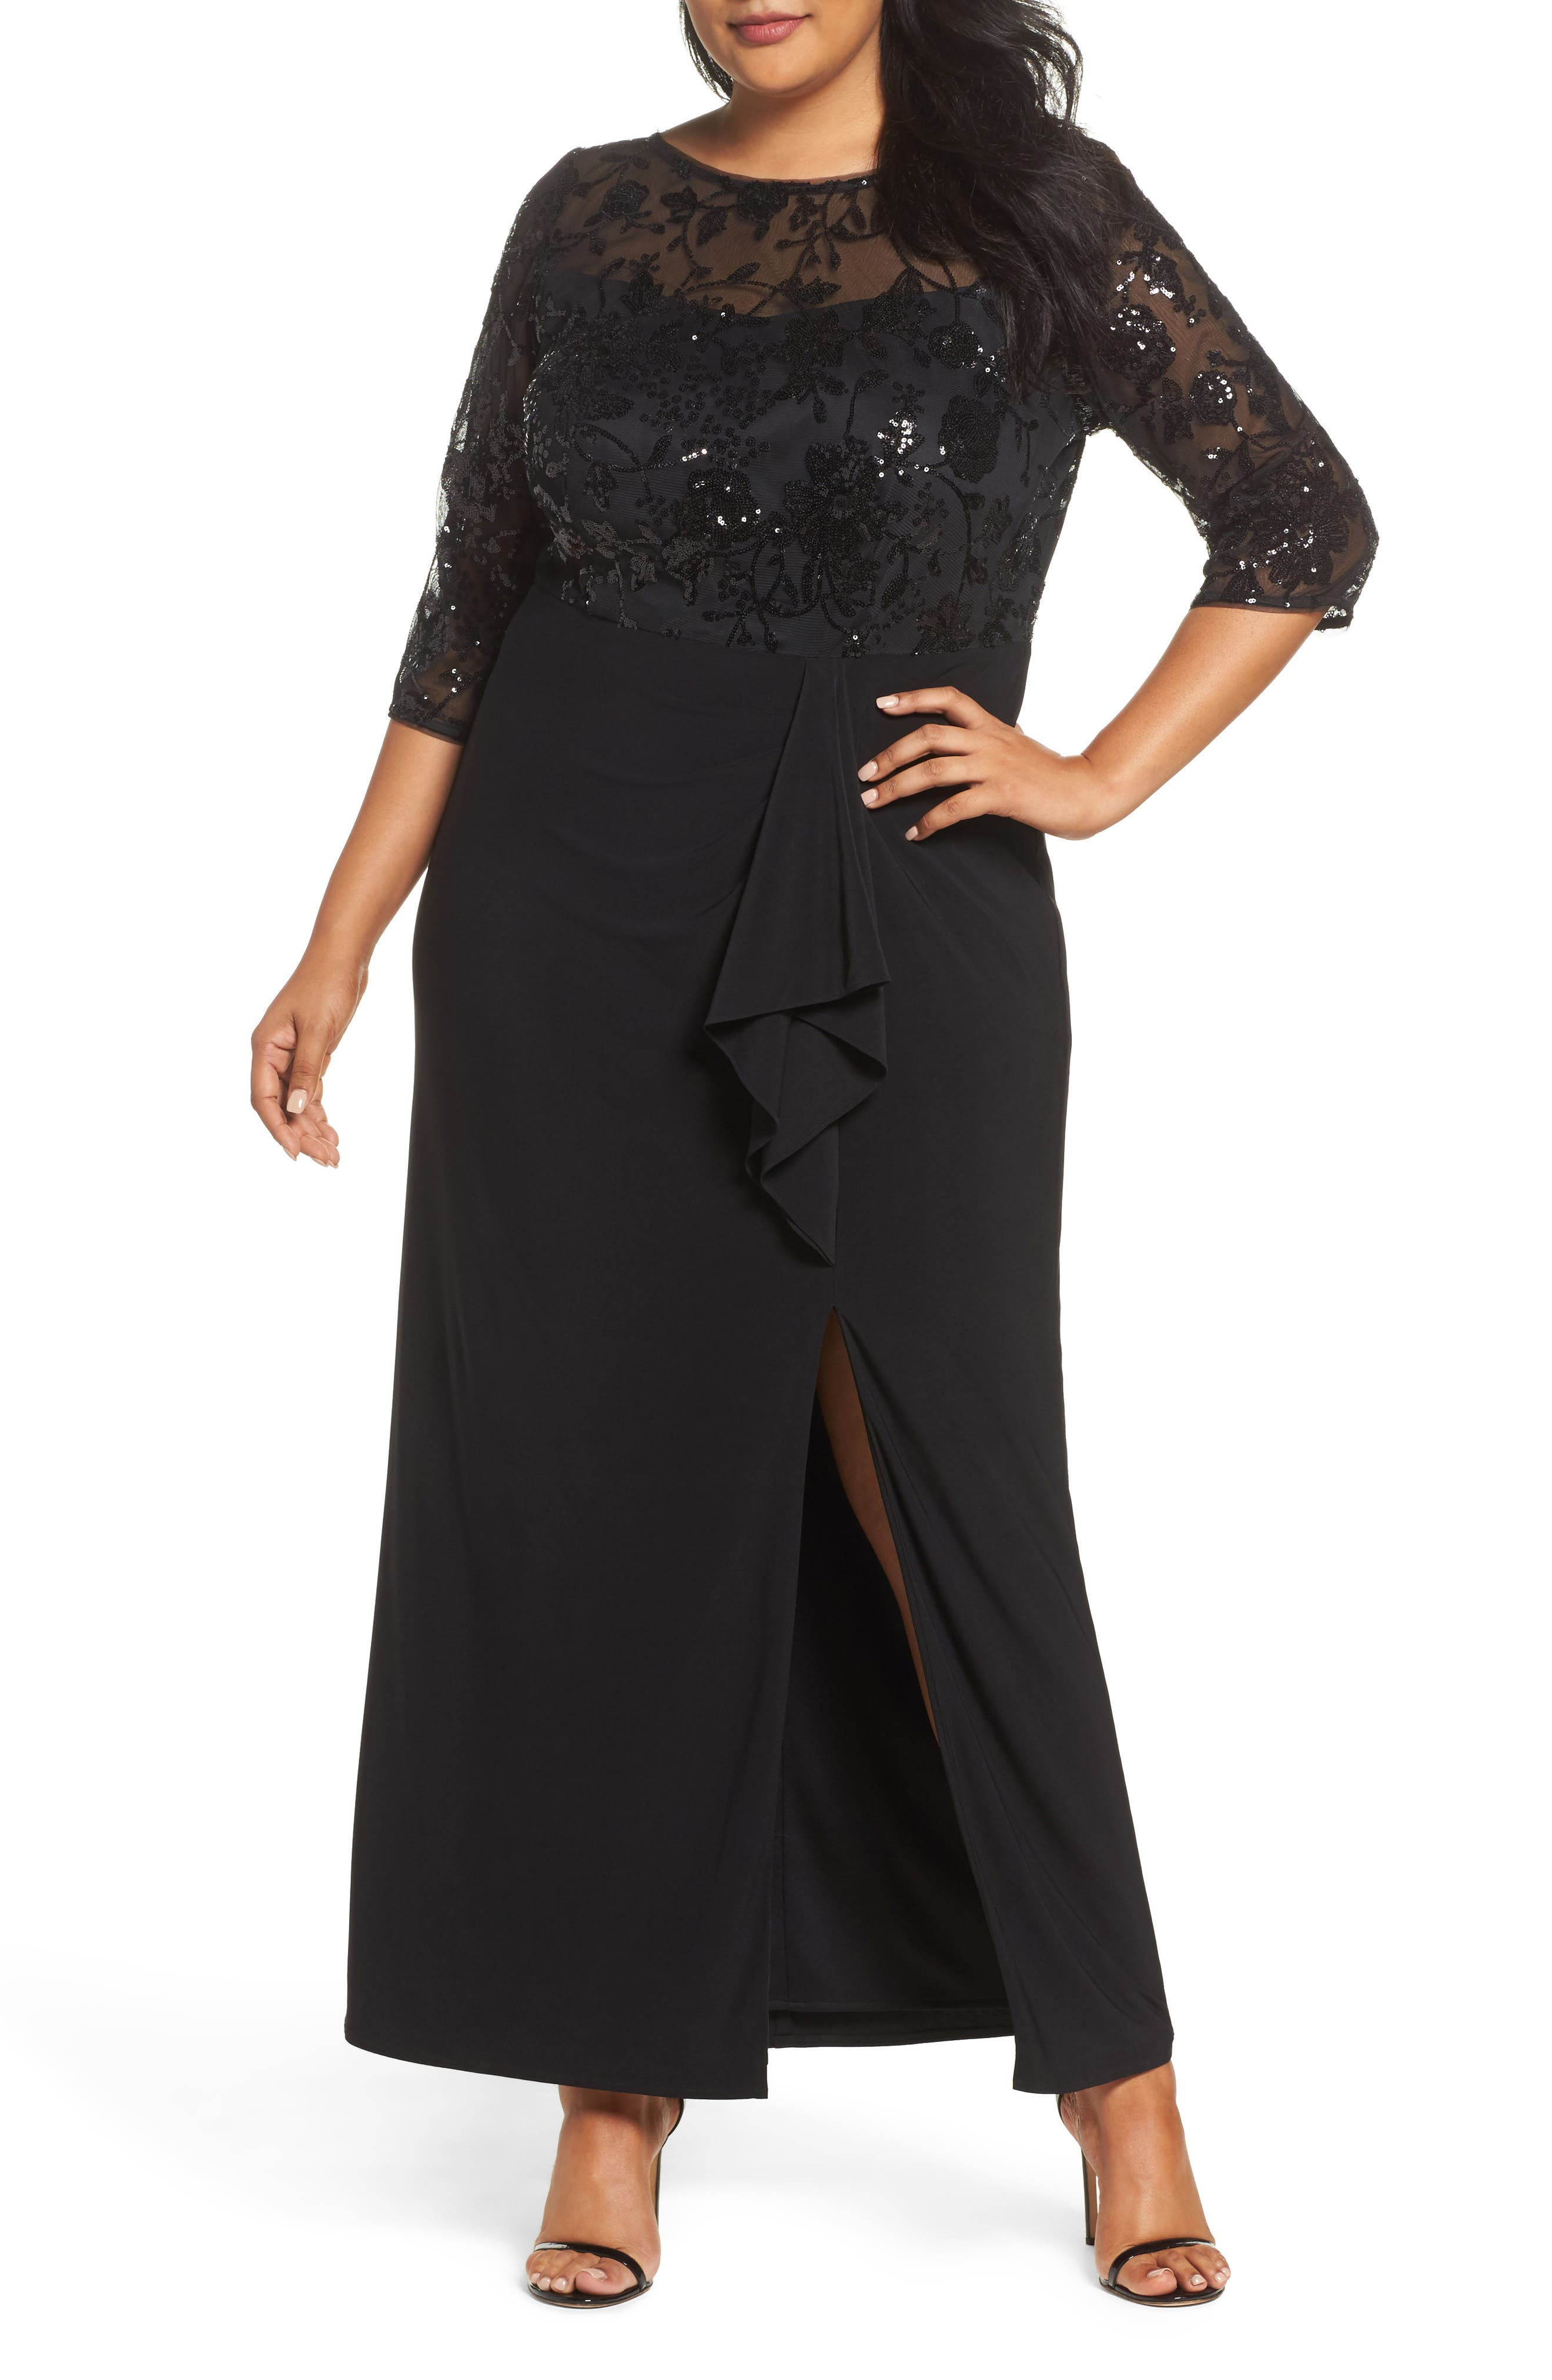 Alternate Image 1 Selected - Alex Evenings Sequin Mesh & Jersey Column Gown (Plus Size)